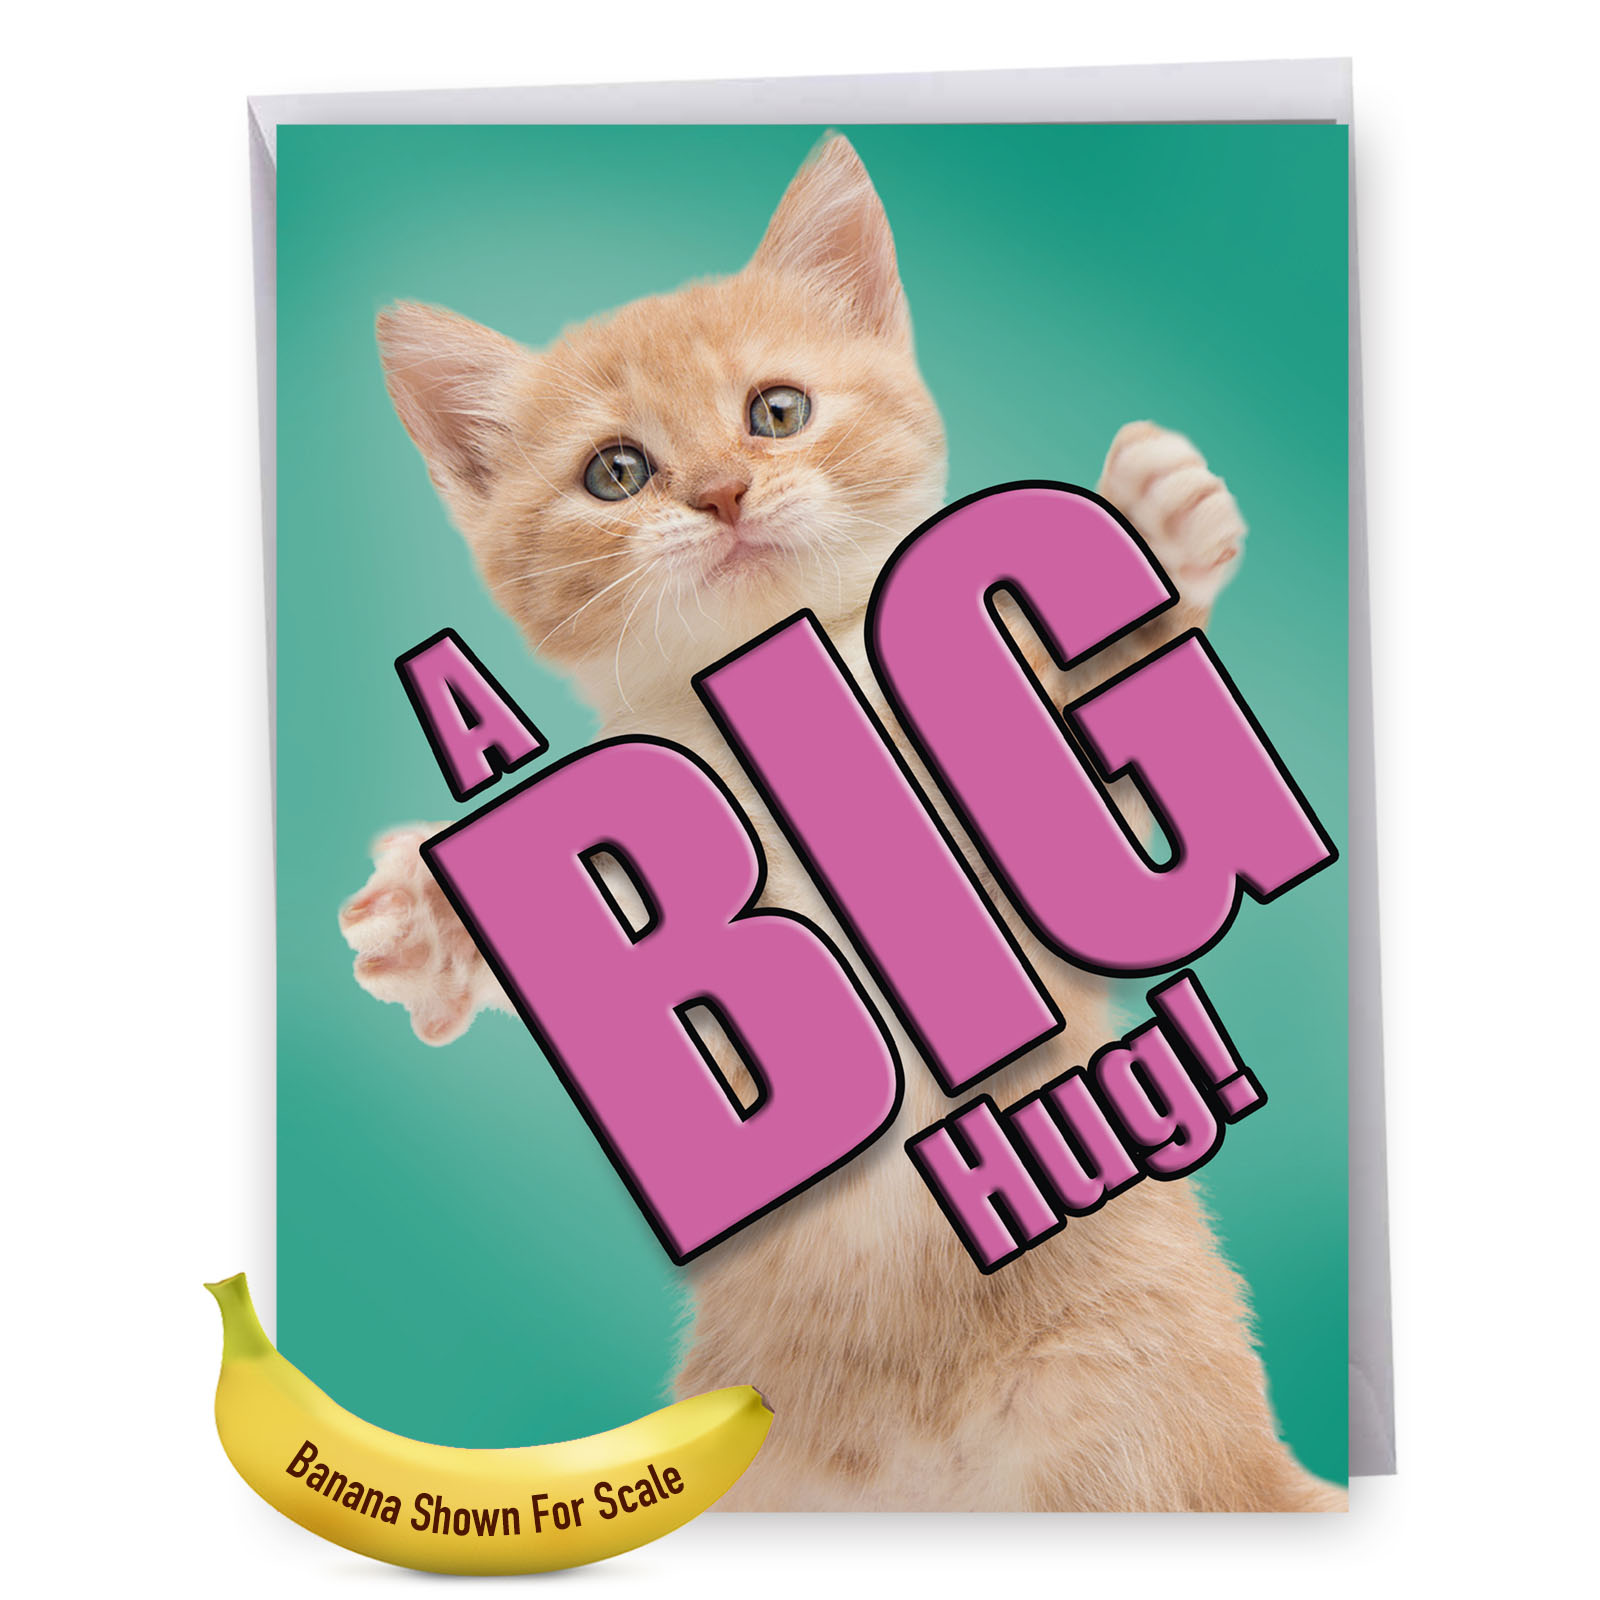 J6614GMYG Large Miss You Card: 'J6614GMYG Miss You: Cat A